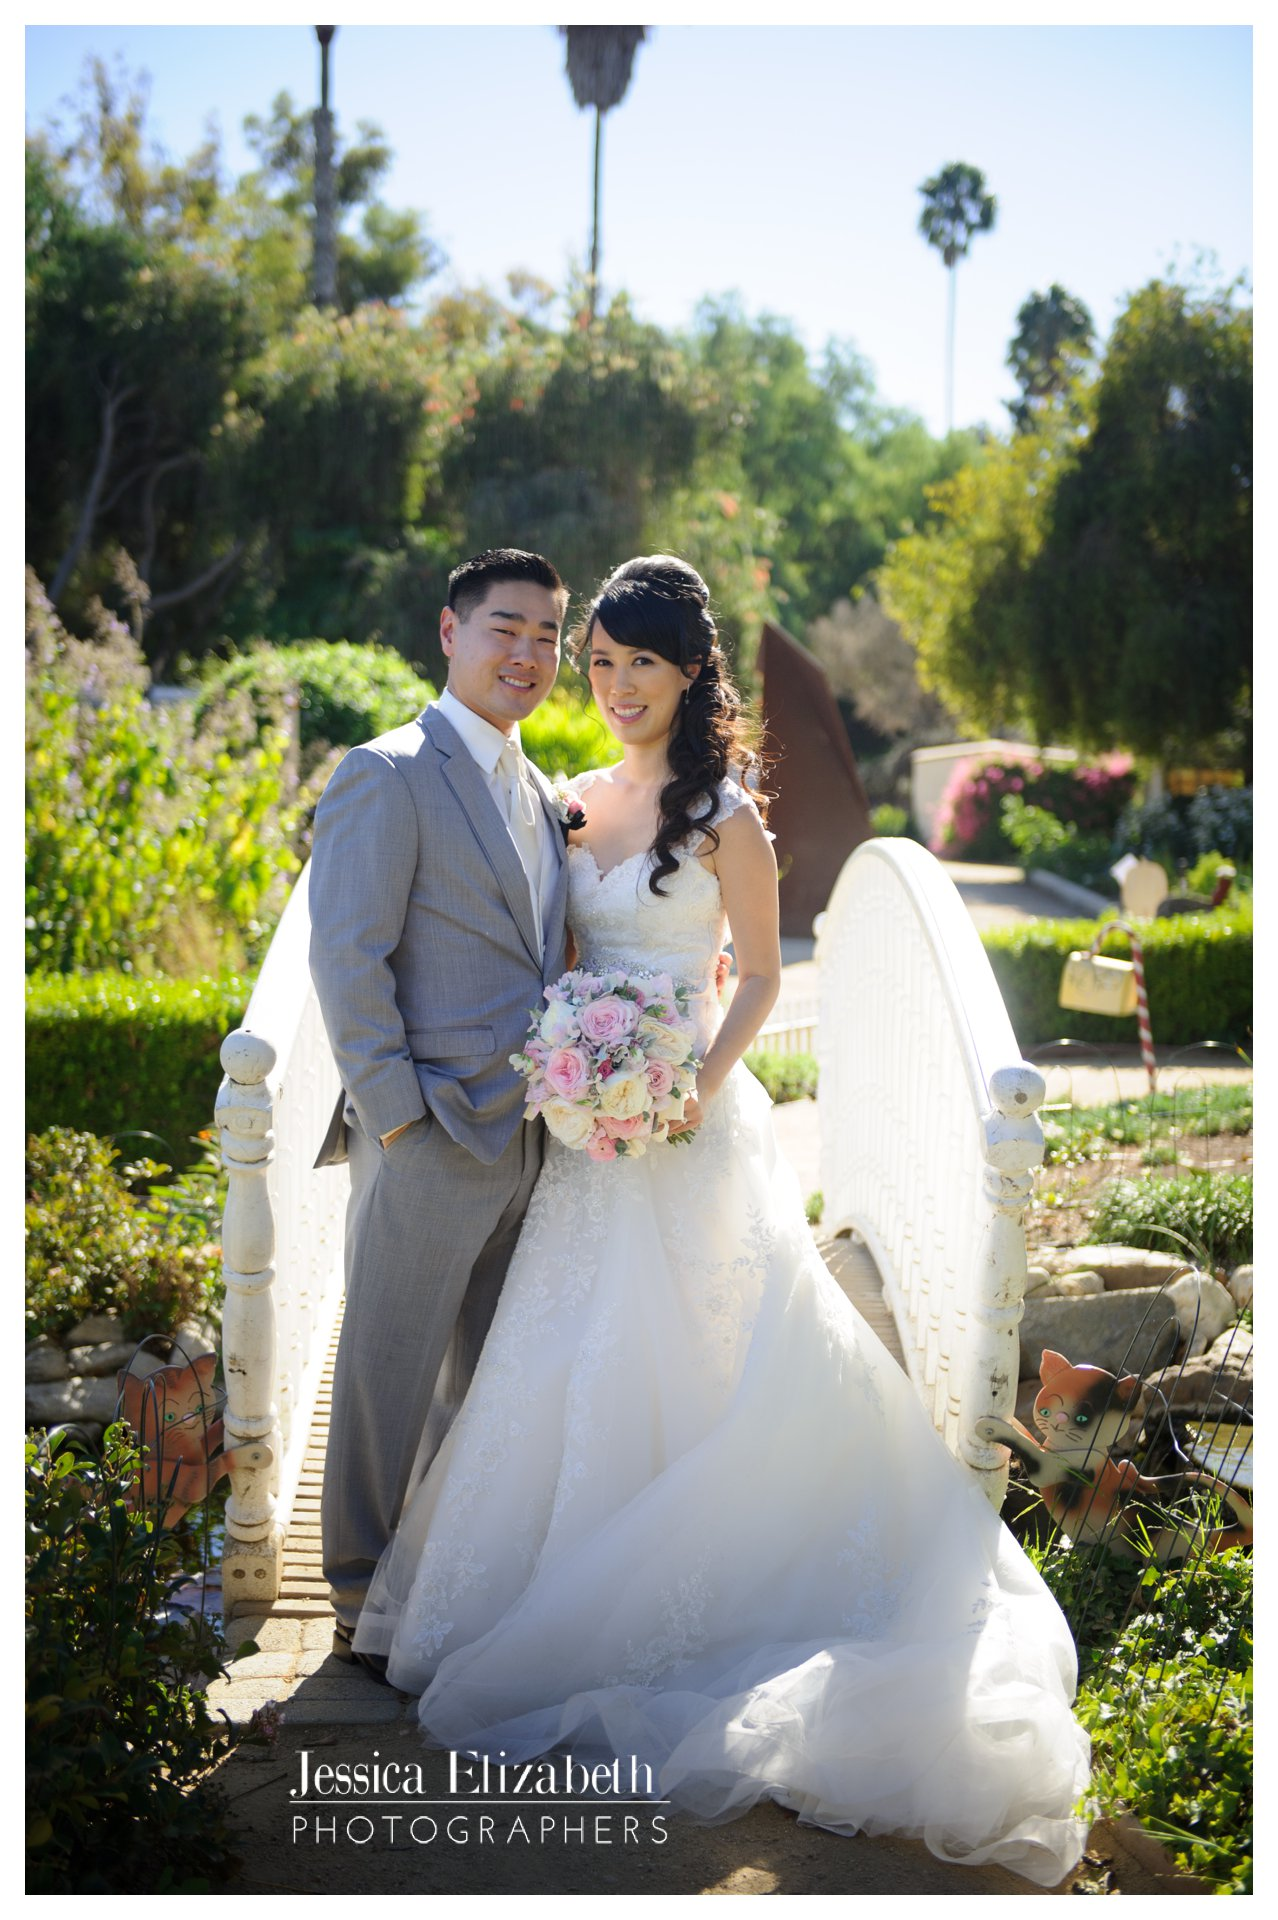 15-South Coast Botanic Garden Palos Verdes Wedding Photography by Jessica Elizabeth